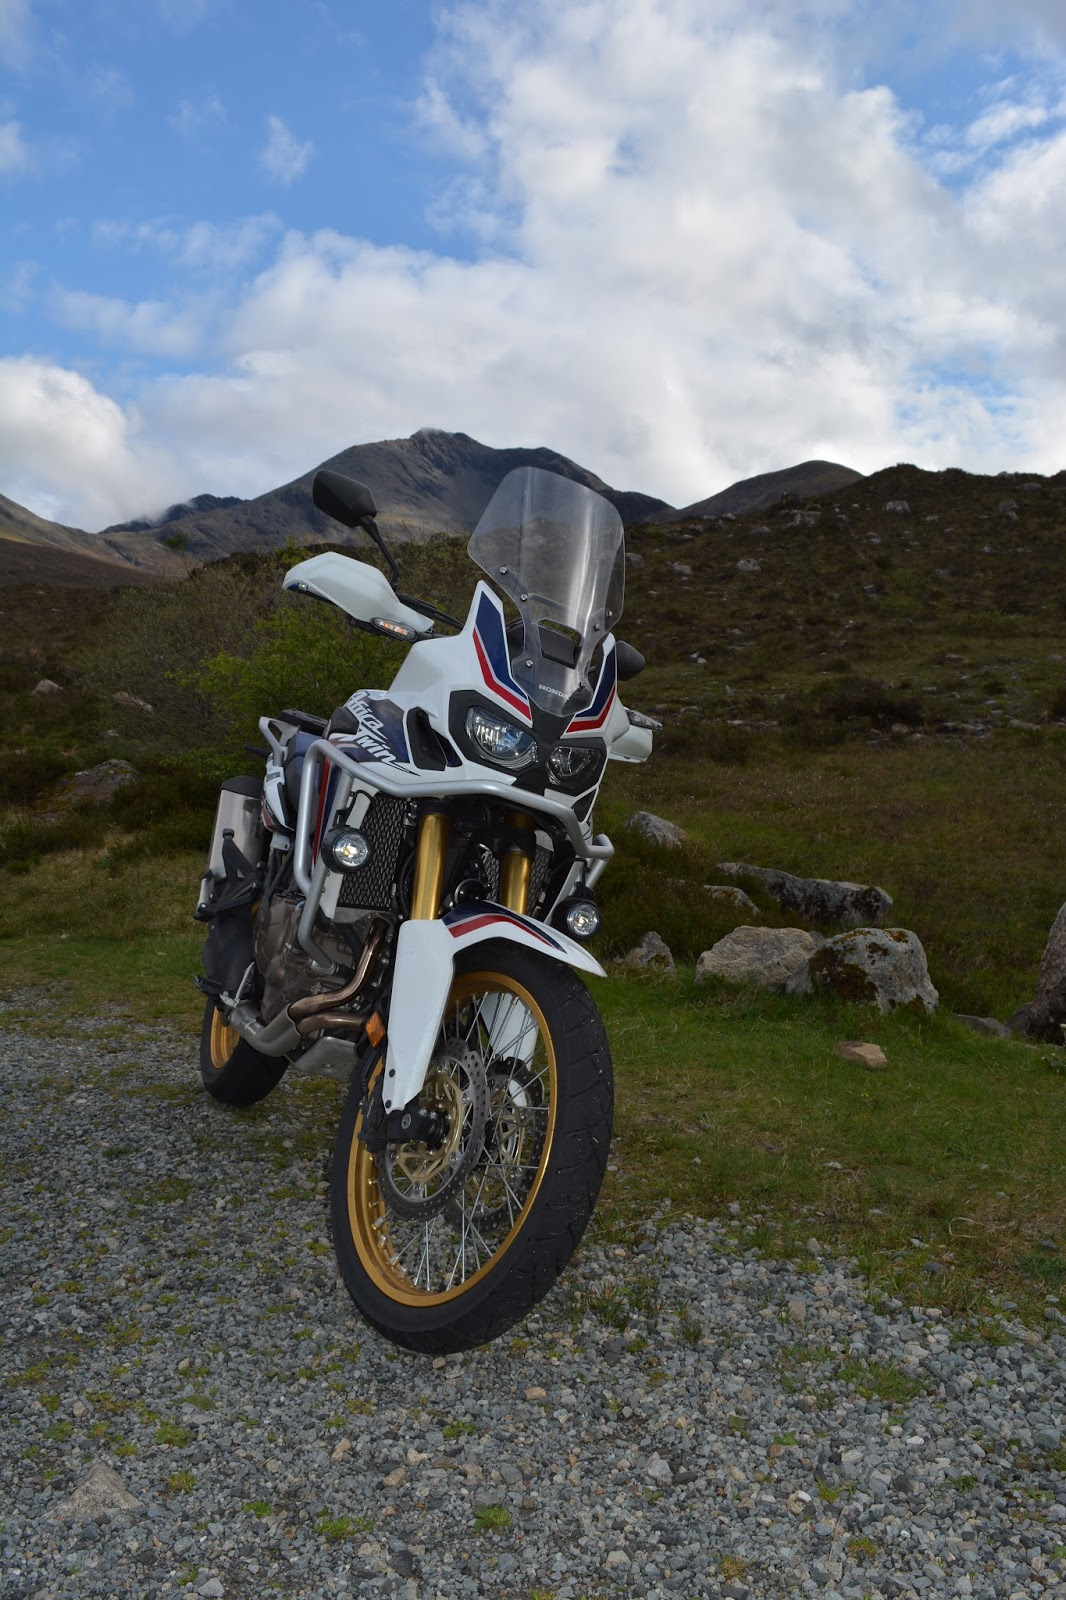 European Motorcycle Diaries August 2016 Two Brothers Ducati Monster 696 Black Series Dual Slip On Exhaust Systems Honda Crf1000l Africa Twin In The Wild